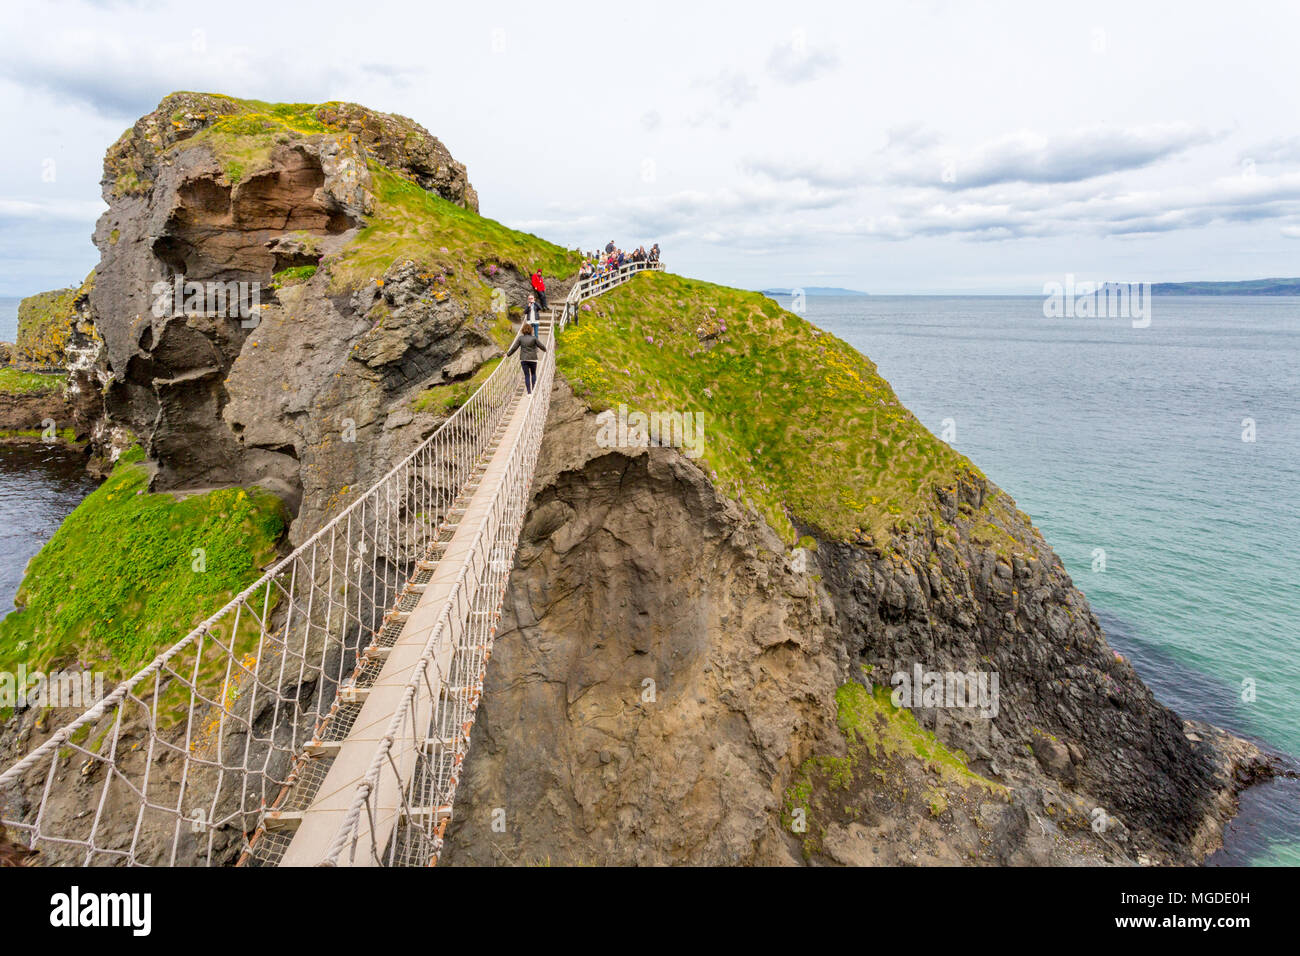 Antrim/N. Ireland - May 30, 2015: The scenic coast of N. Ireland and the Carrick-a-Rede Rope Bridge which connects the mainland with a small island. - Stock Image